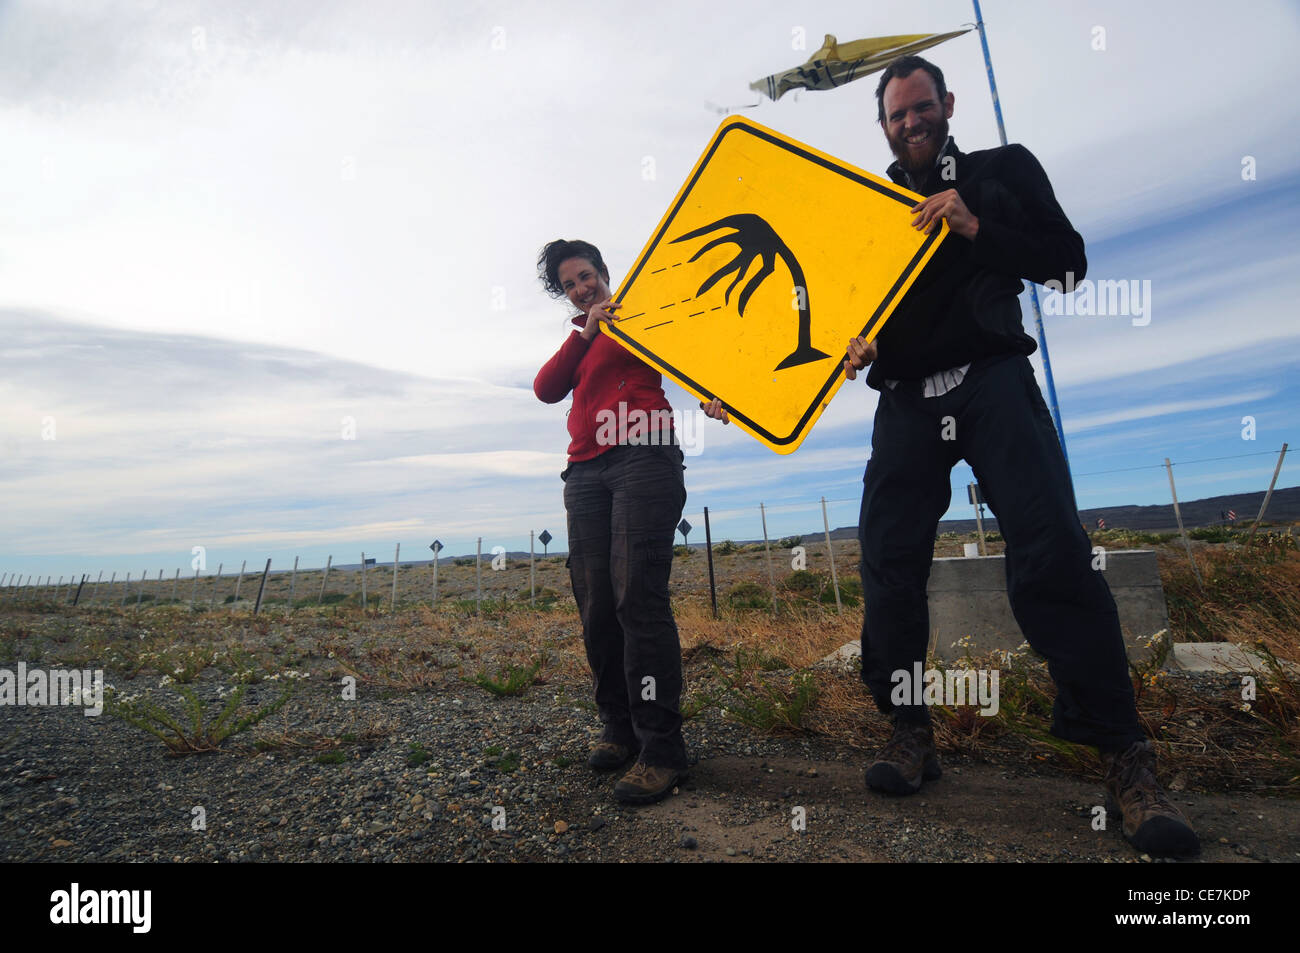 Road sign cautioning motorists about windy conditions, along Ruta Nacional 40 in Patagonia, Argentina. No MR or - Stock Image